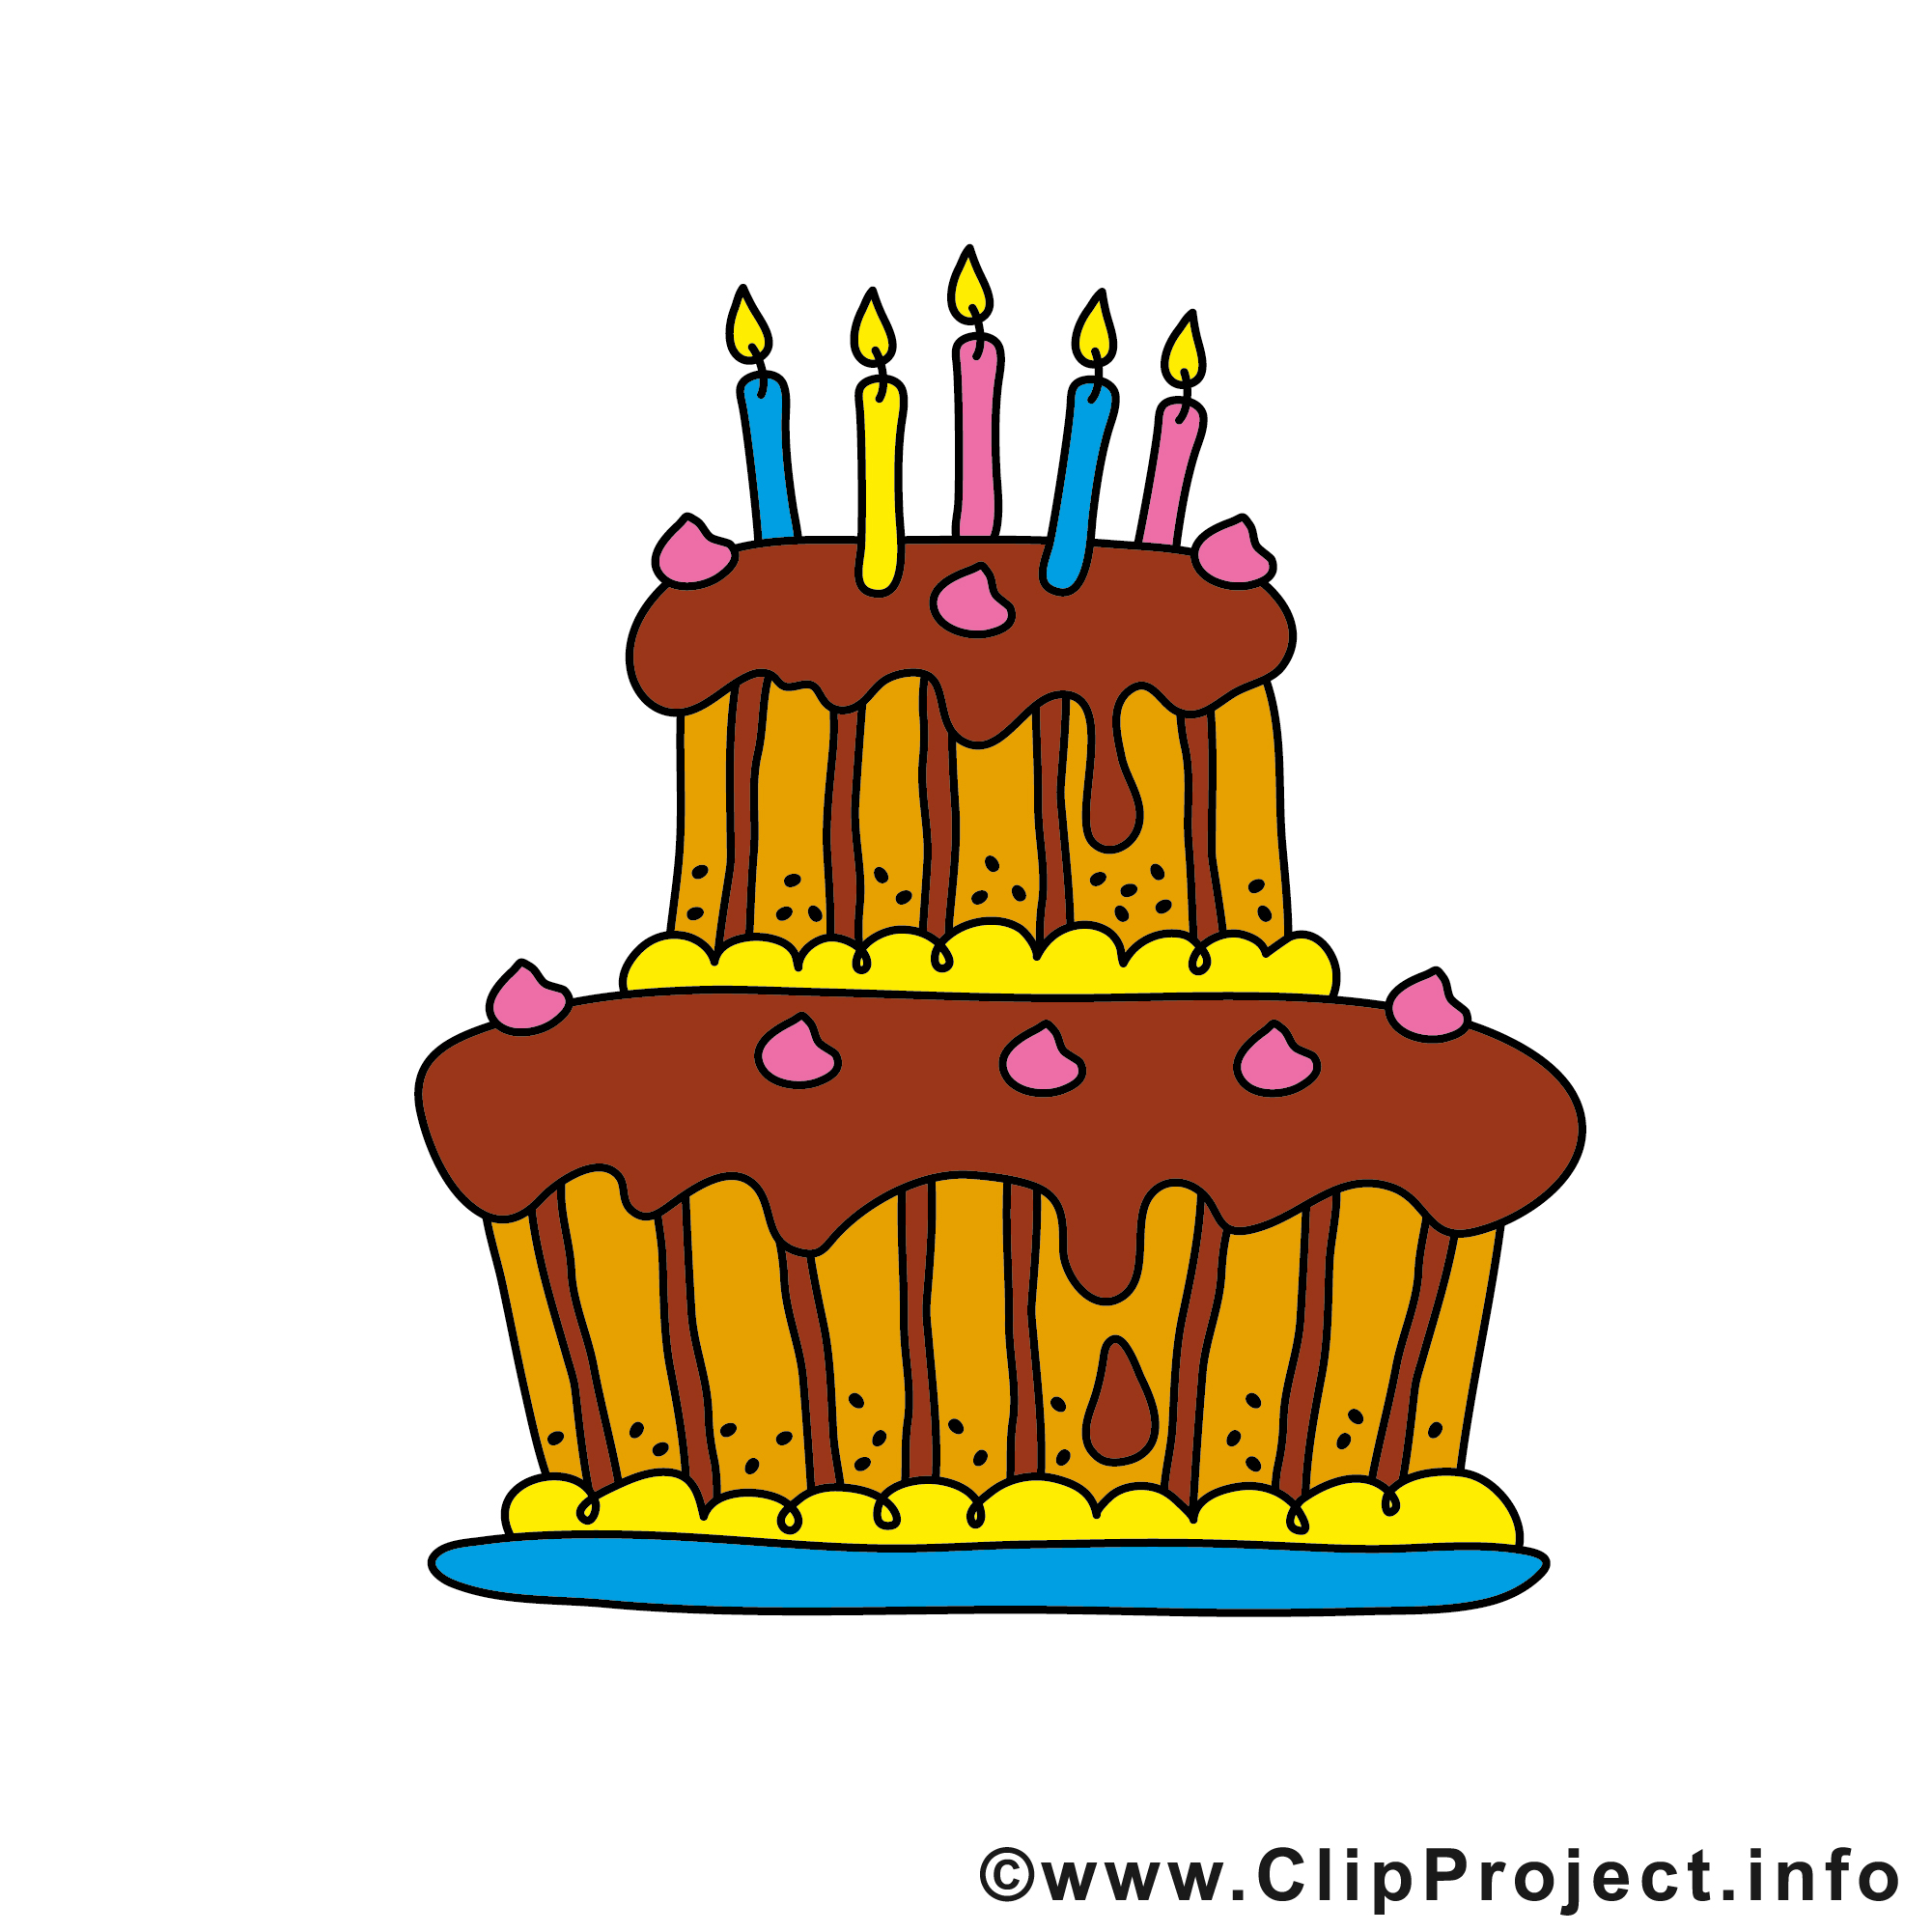 clipart geburtstag - photo #33